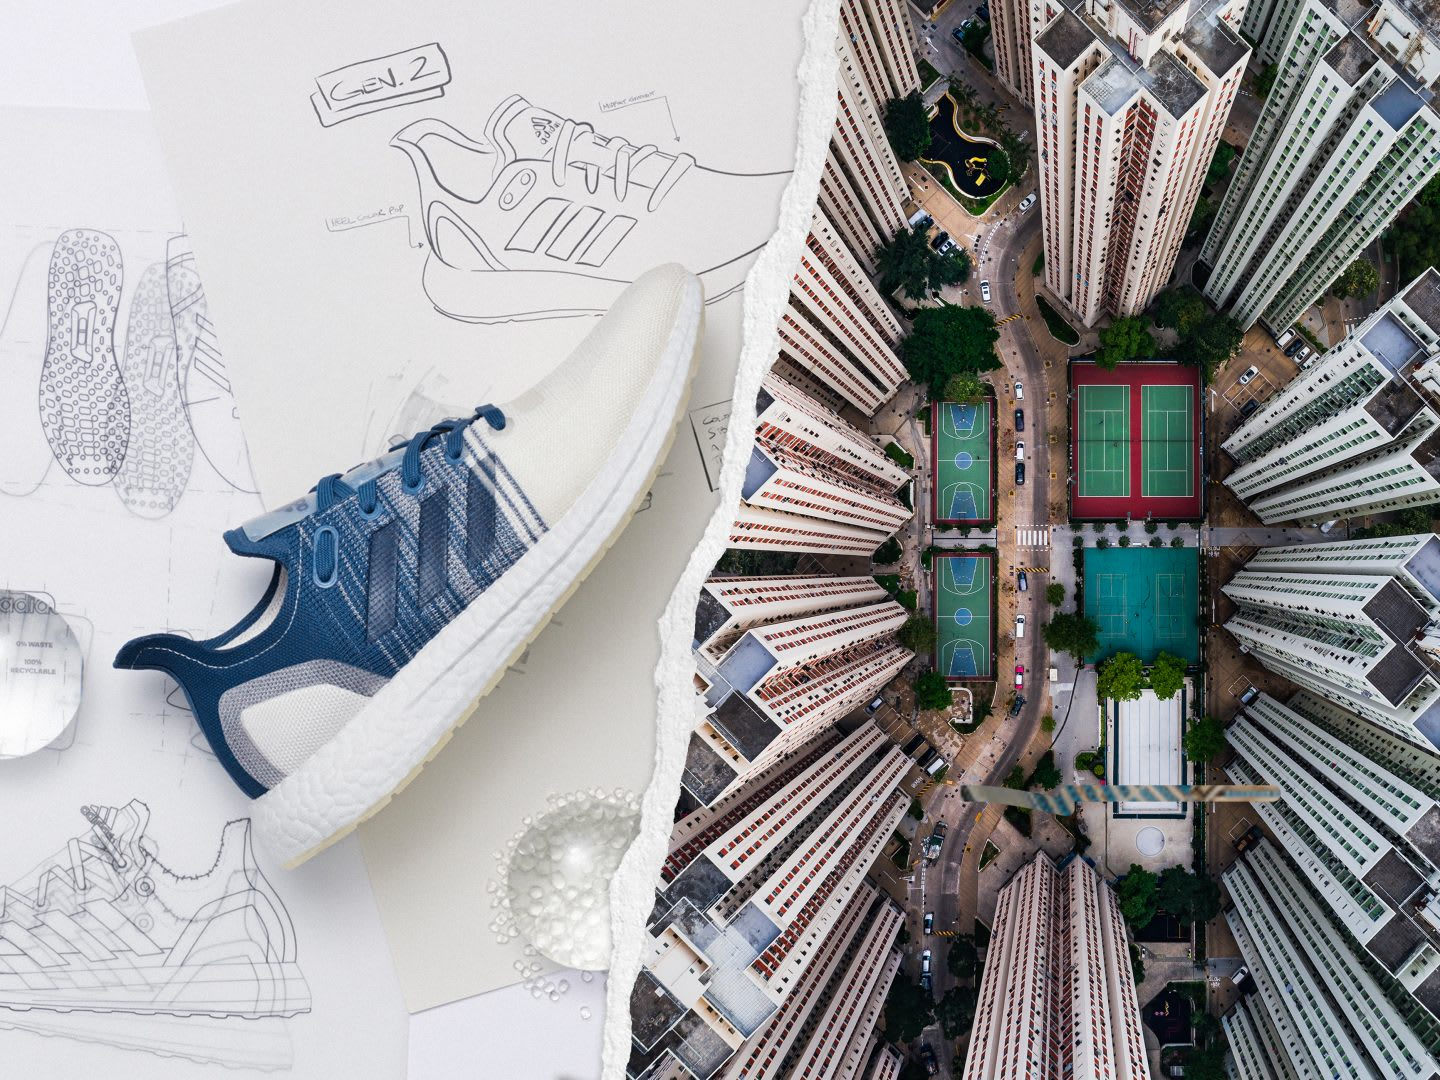 Running shoe with shoe sketches in a collage with skyscraper buildings in a city, sustainability, futurecraftloop, buildings, highrise, tennis court, city, circularity